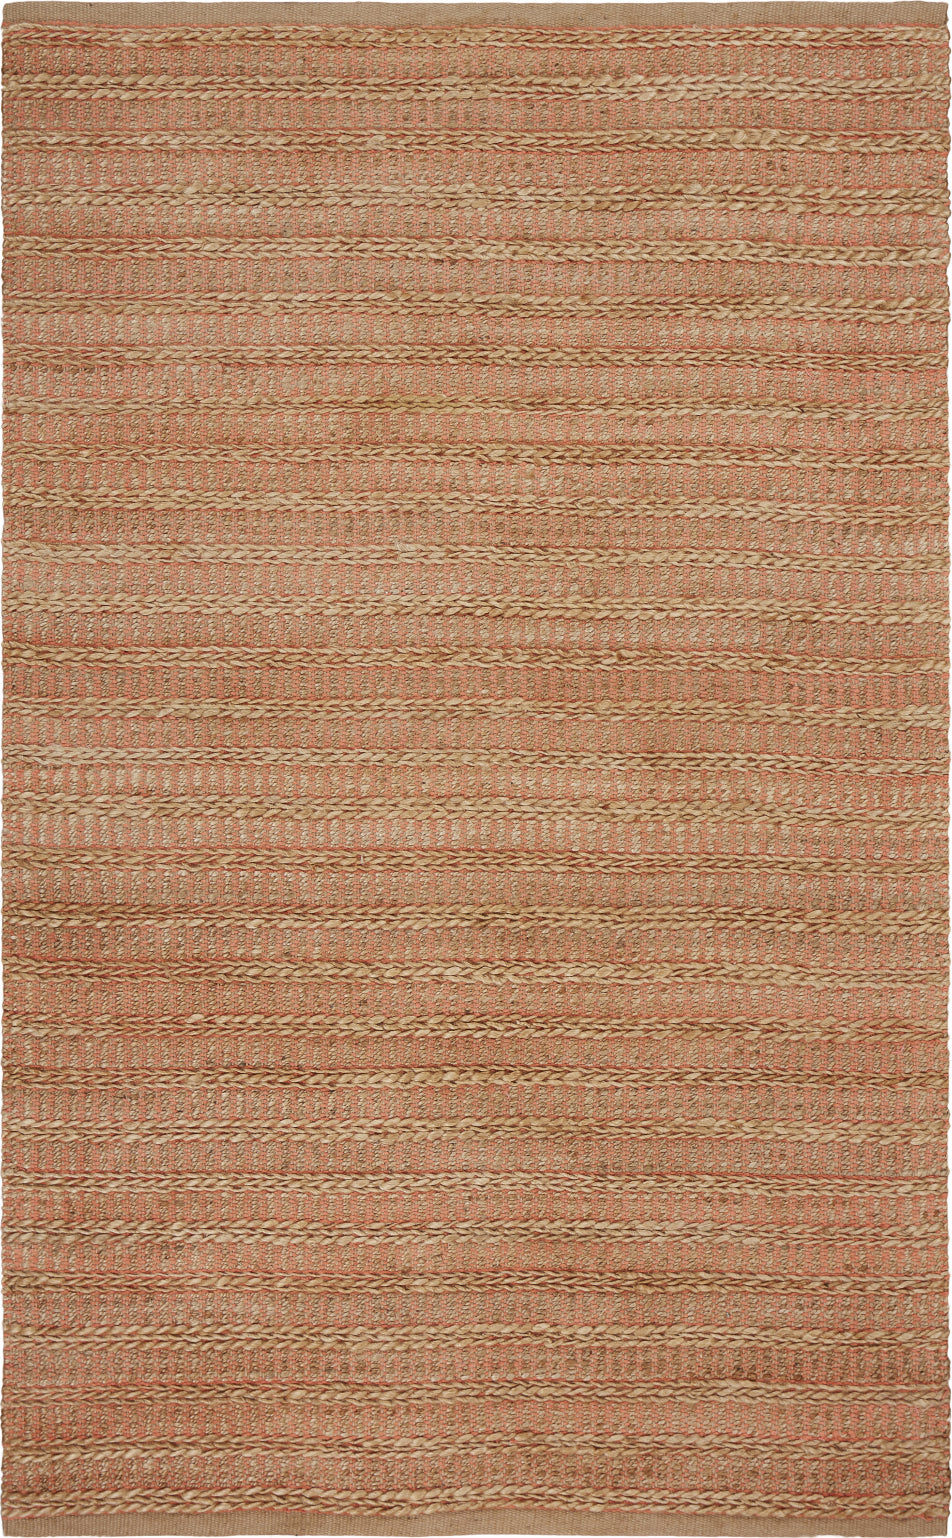 LR Resources Natural Fiber 3316 Fusion Coral Area Rug main image